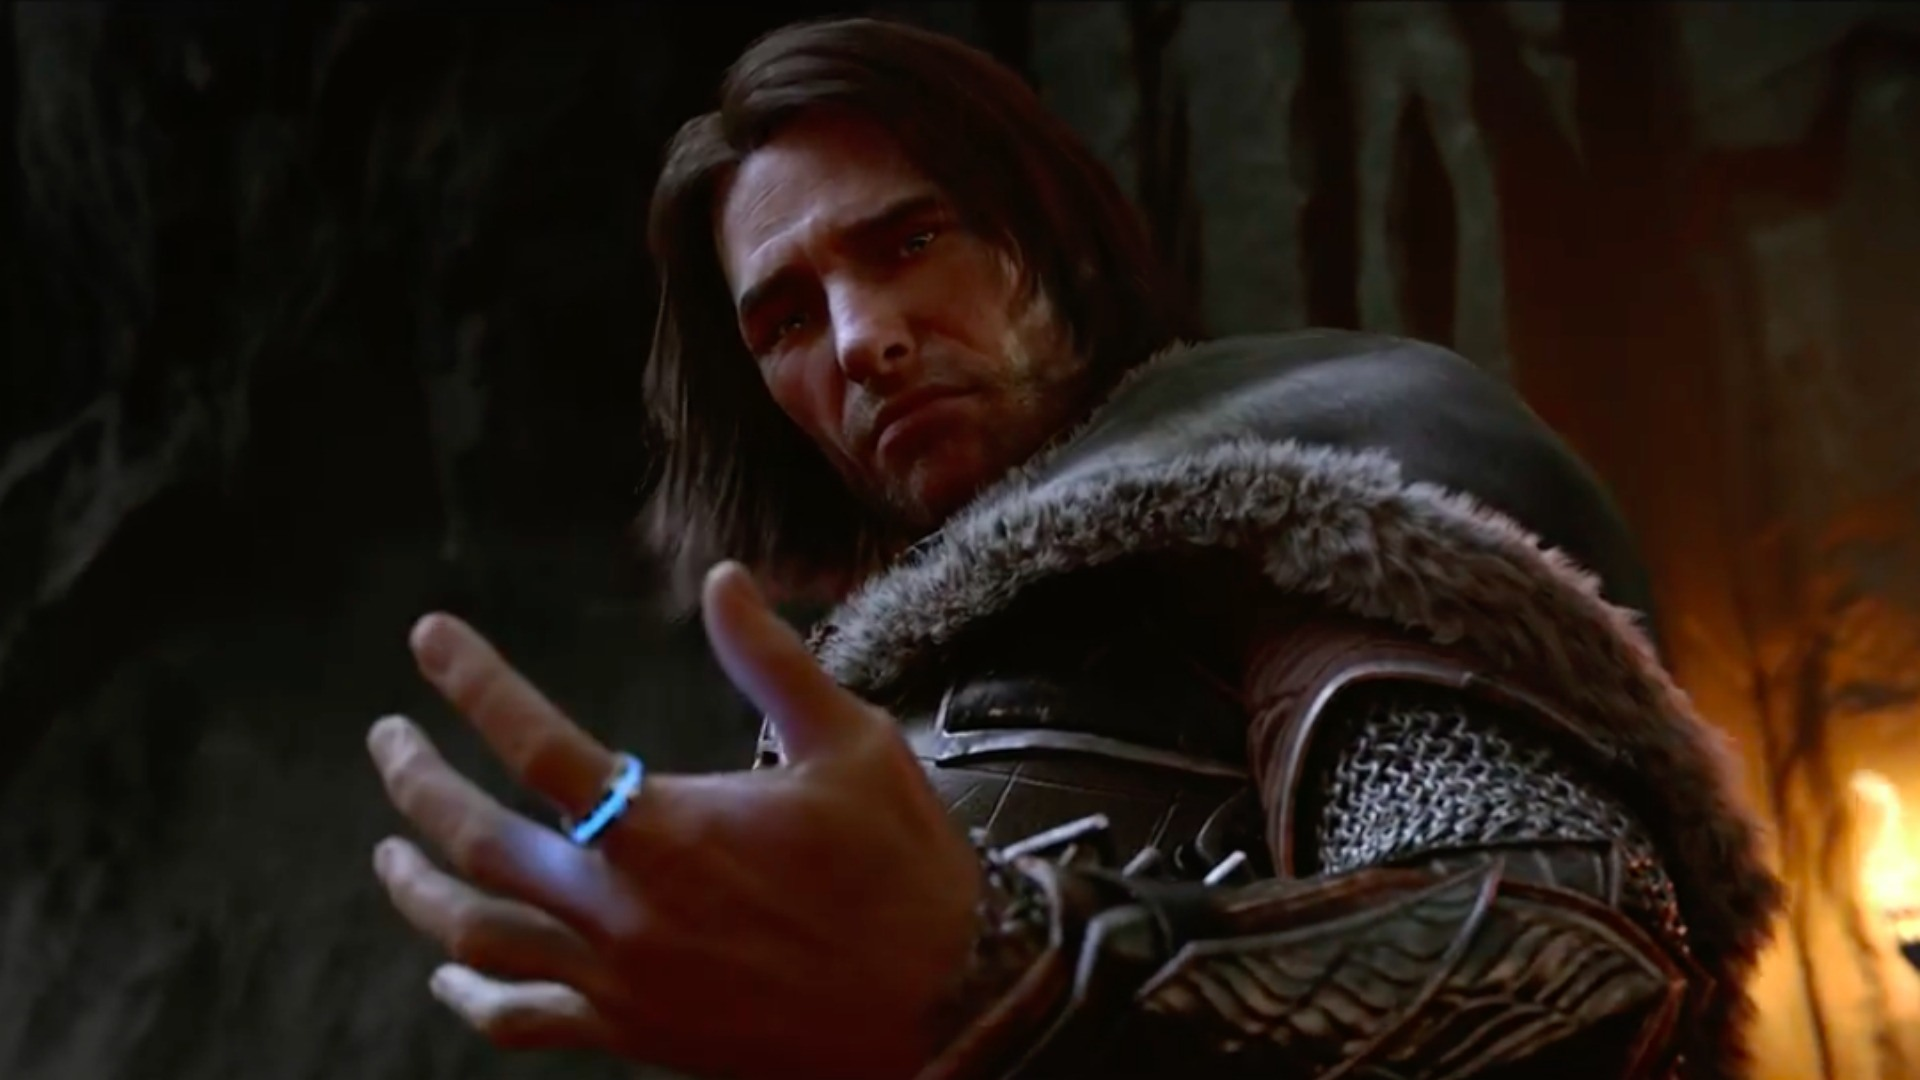 shadow_of_war_talion_1_skills_guide